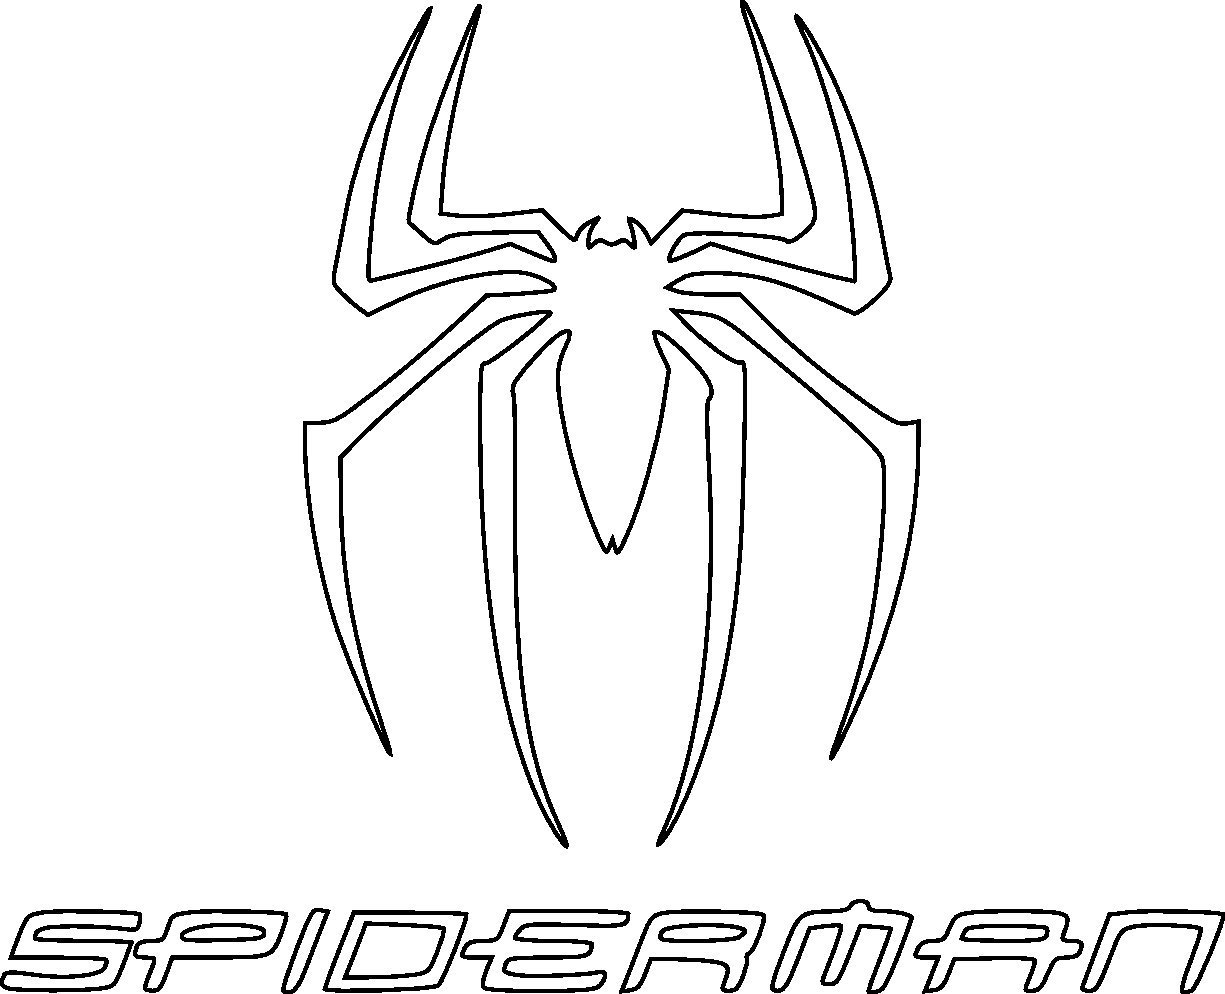 spiderman logo drawing at getdrawings com free for personal use